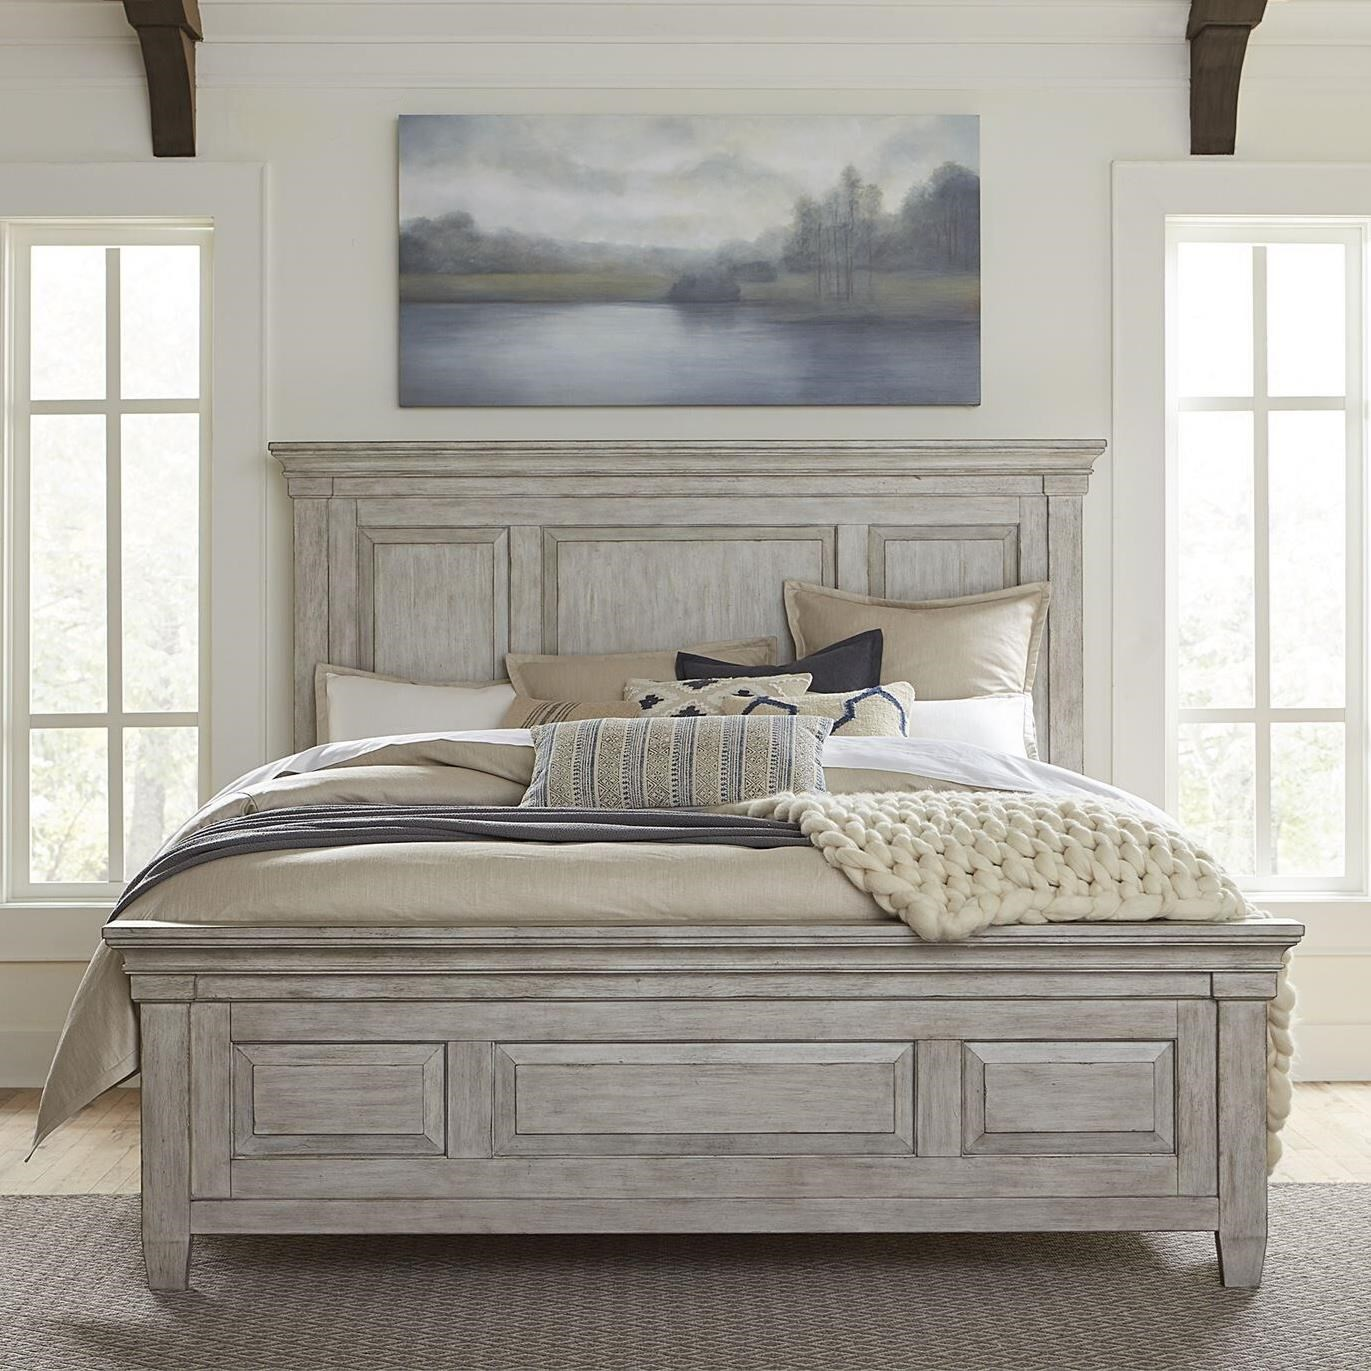 Heartland King Panel Bed by Liberty Furniture at Turk Furniture